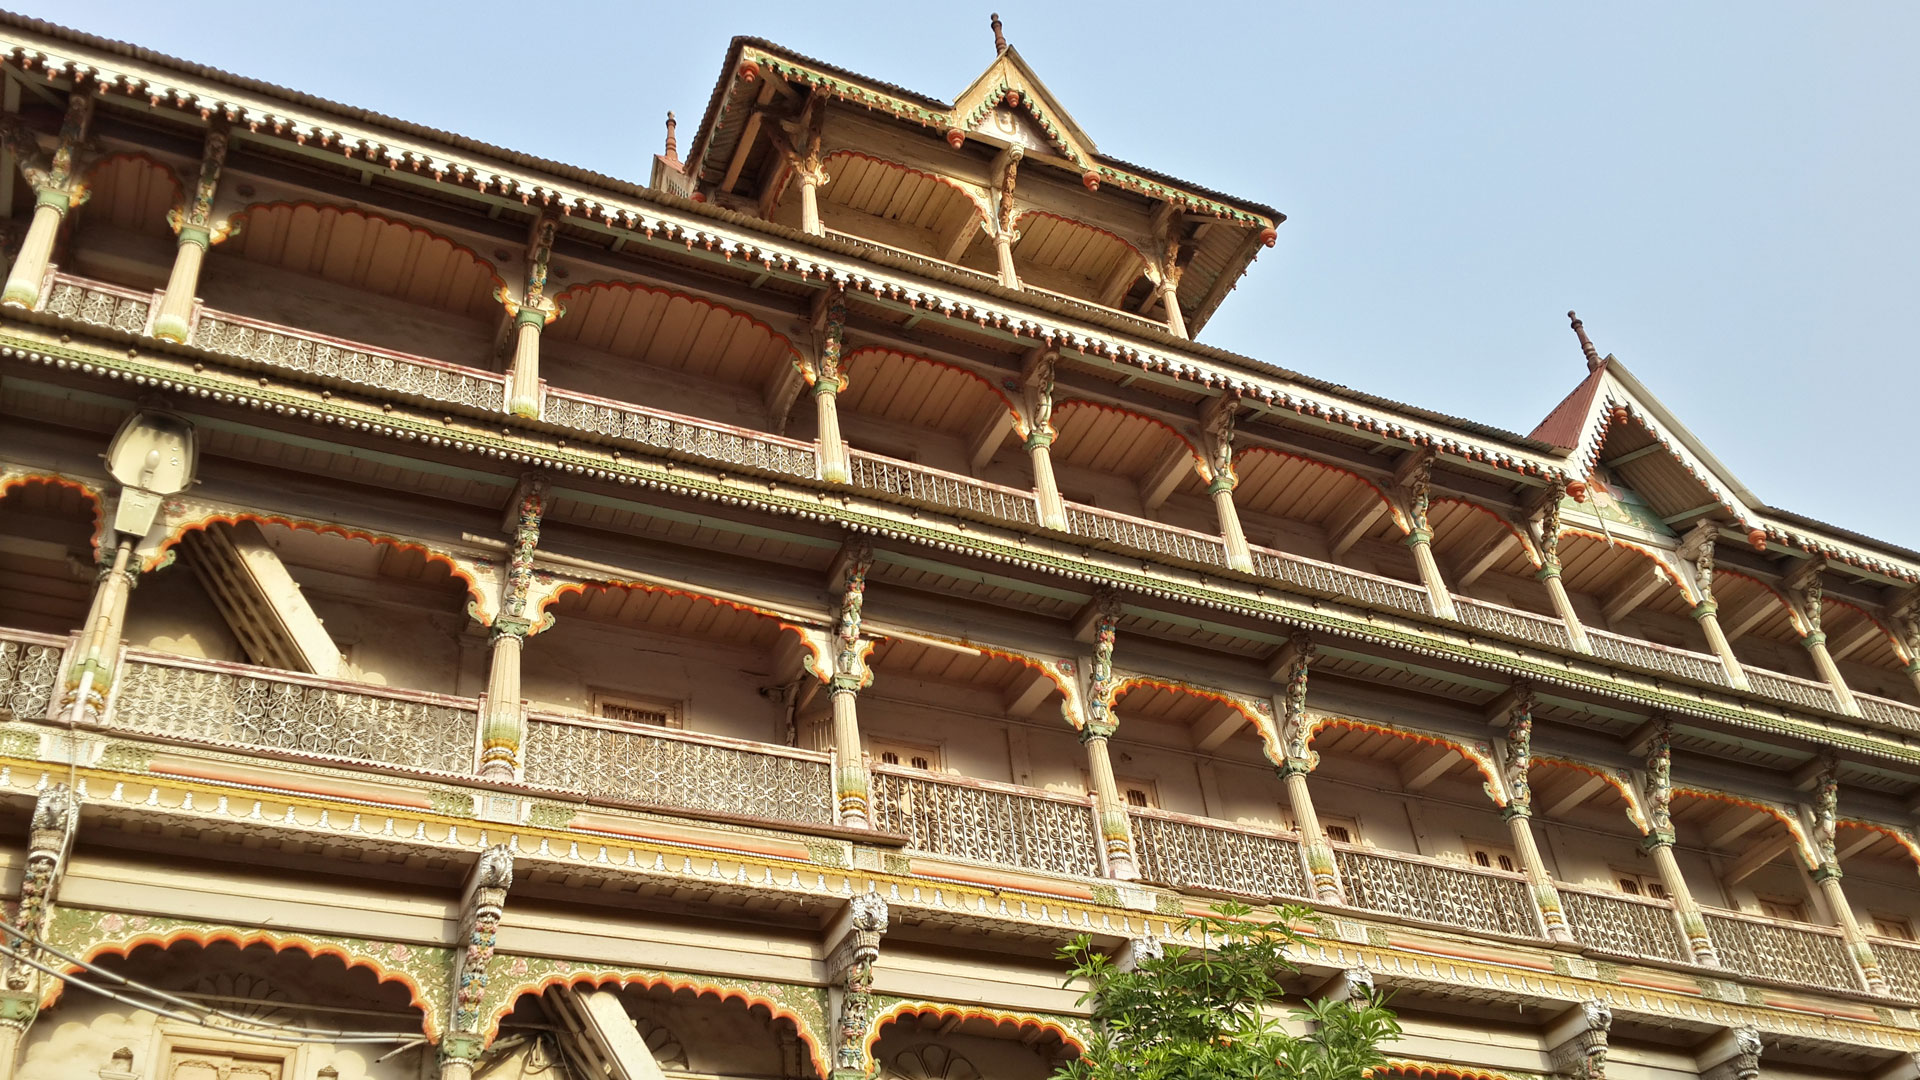 The monasteries at the Kalupur temple in Ahmedabad